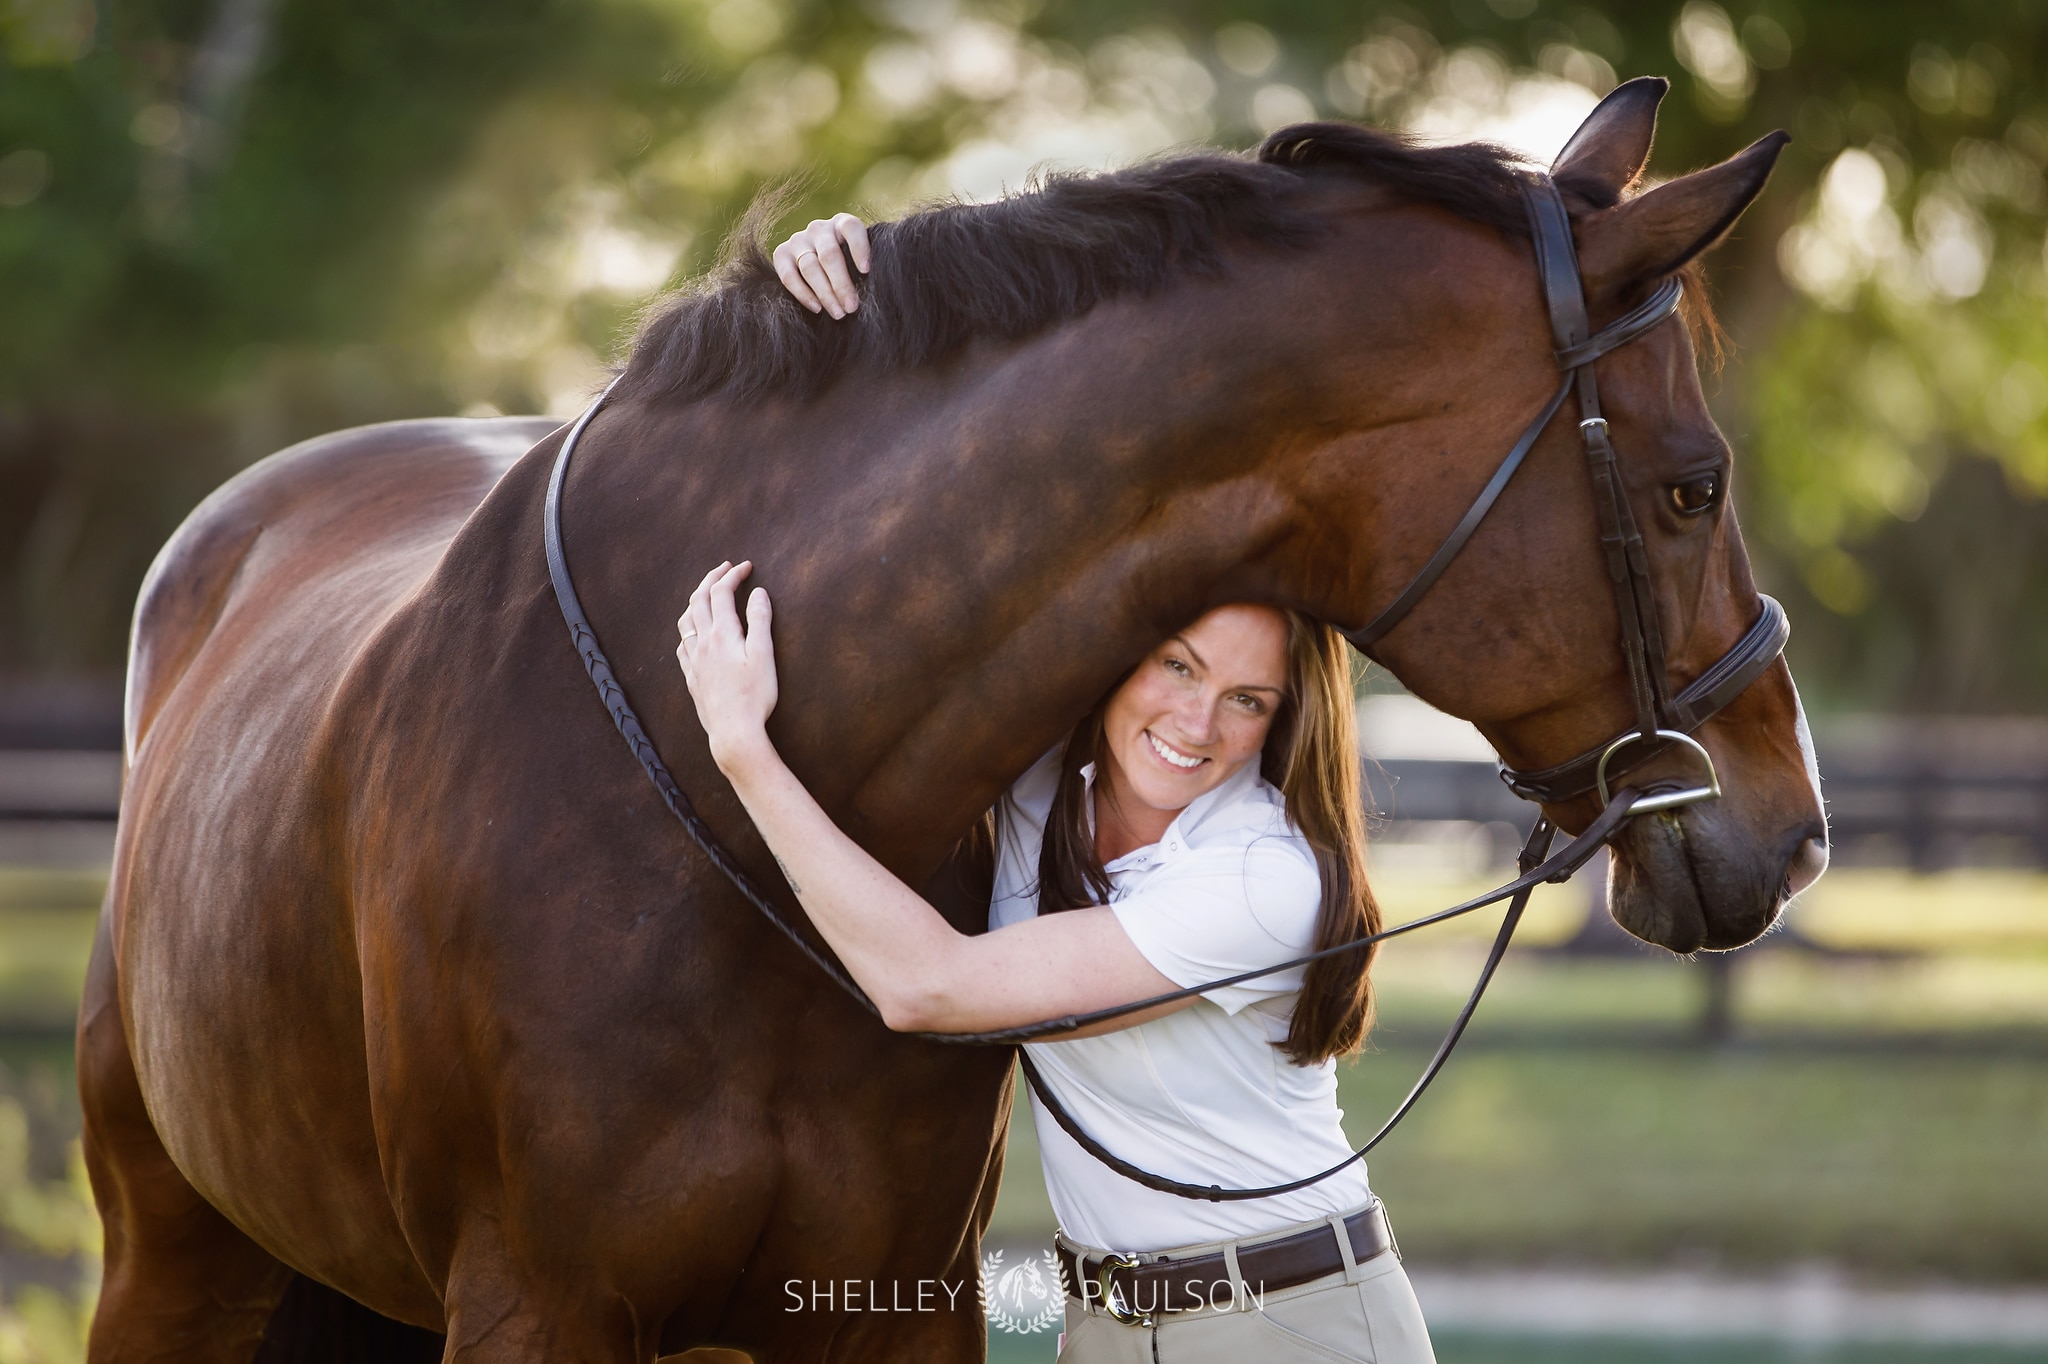 The Equine Photography Retreat pt. 1